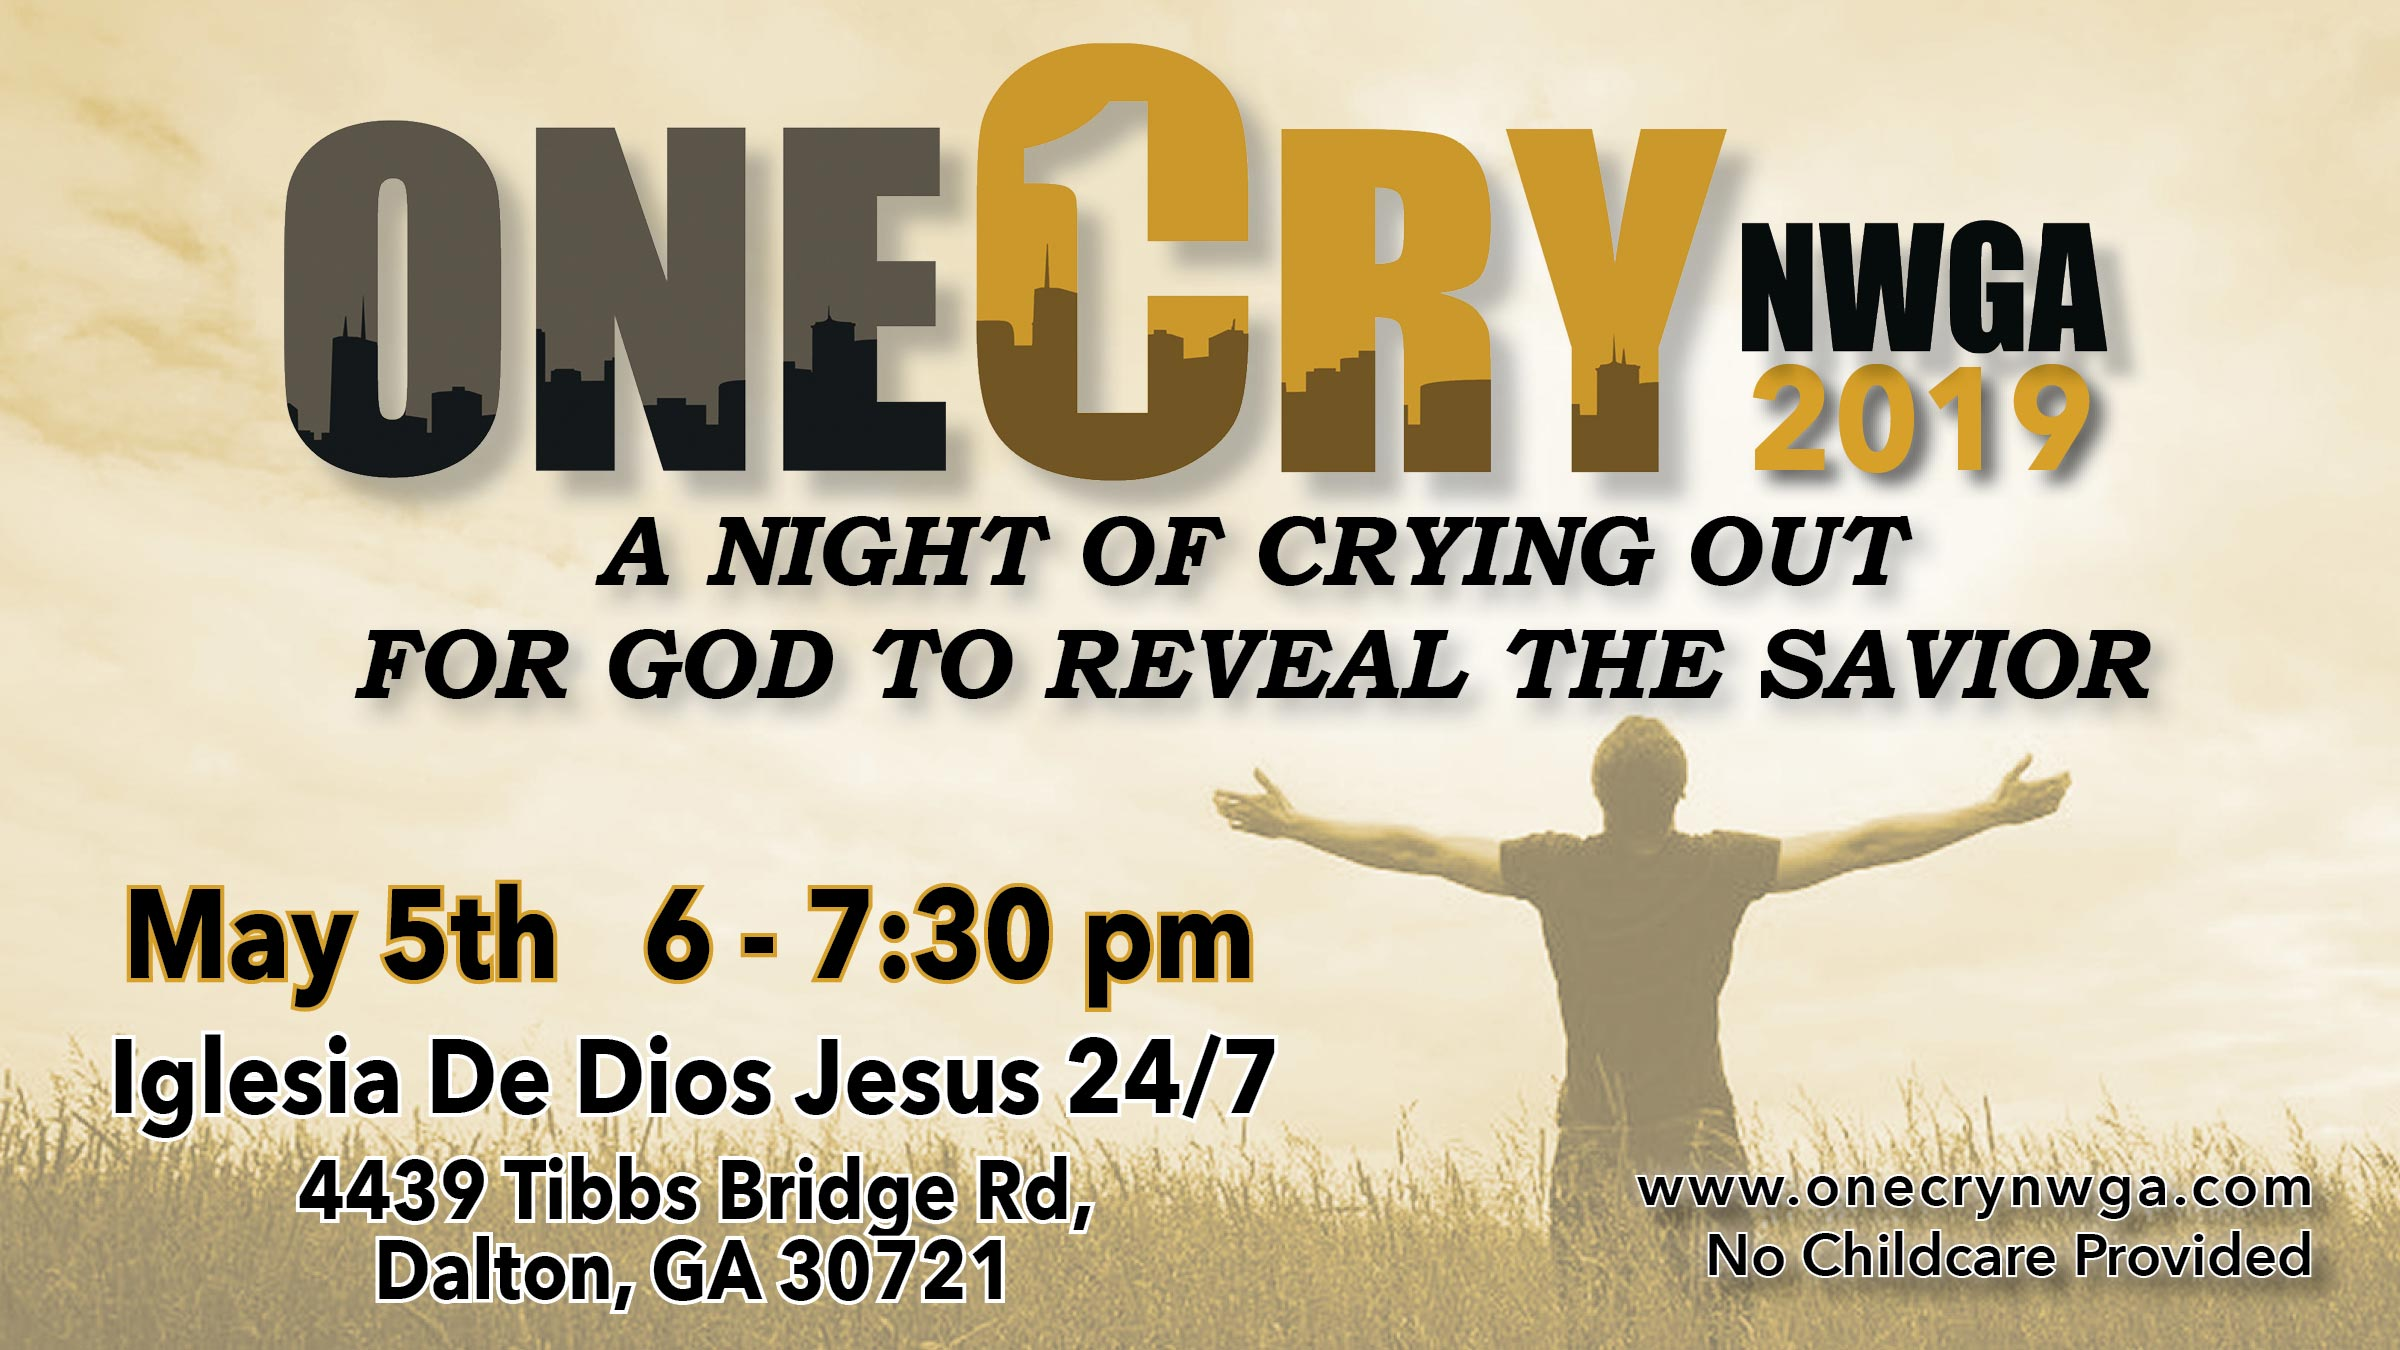 OneCry NWGA Revival 2019 | A Night of Crying Out to God to Reveal the Savior | May 5, 2019 @ 6:00 PM | Iglesia de Dios Jesus 24/7, 4439 Tibbs Bridge Rd., Dalton, GA 30721 | No Childcare Provided